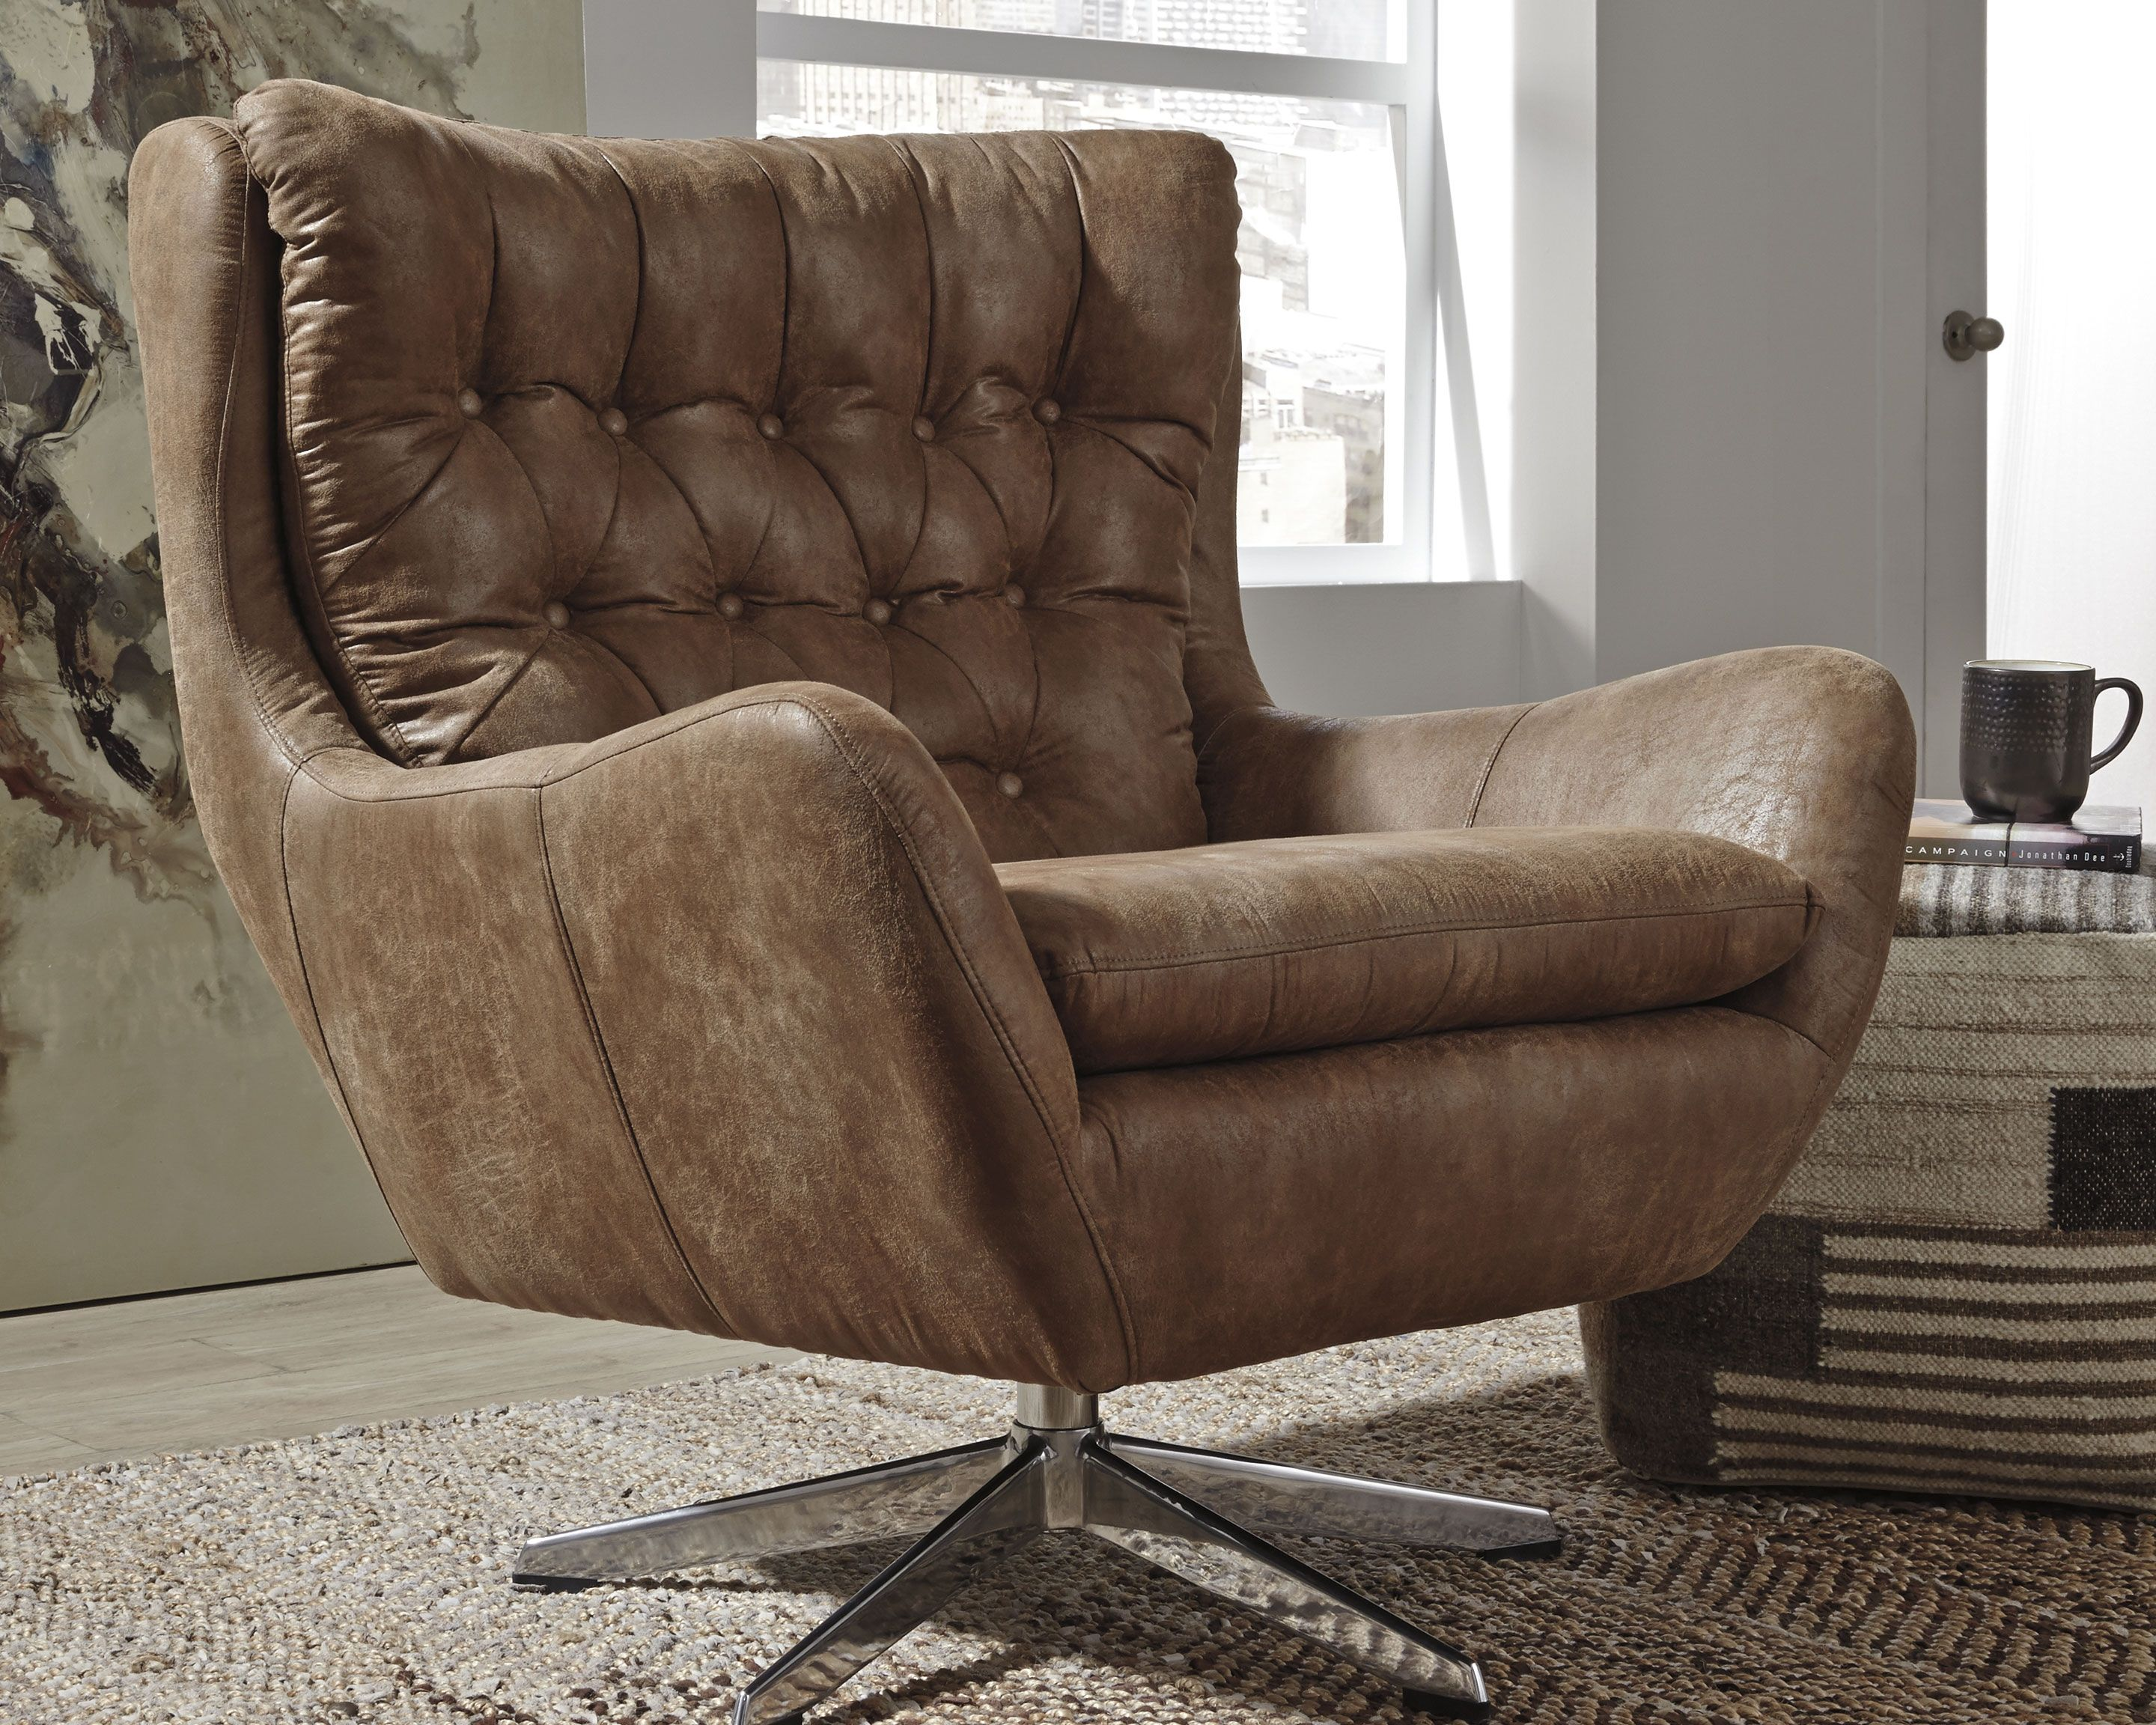 velburg accent chair brown products in 2019 accent chairs rh pinterest com